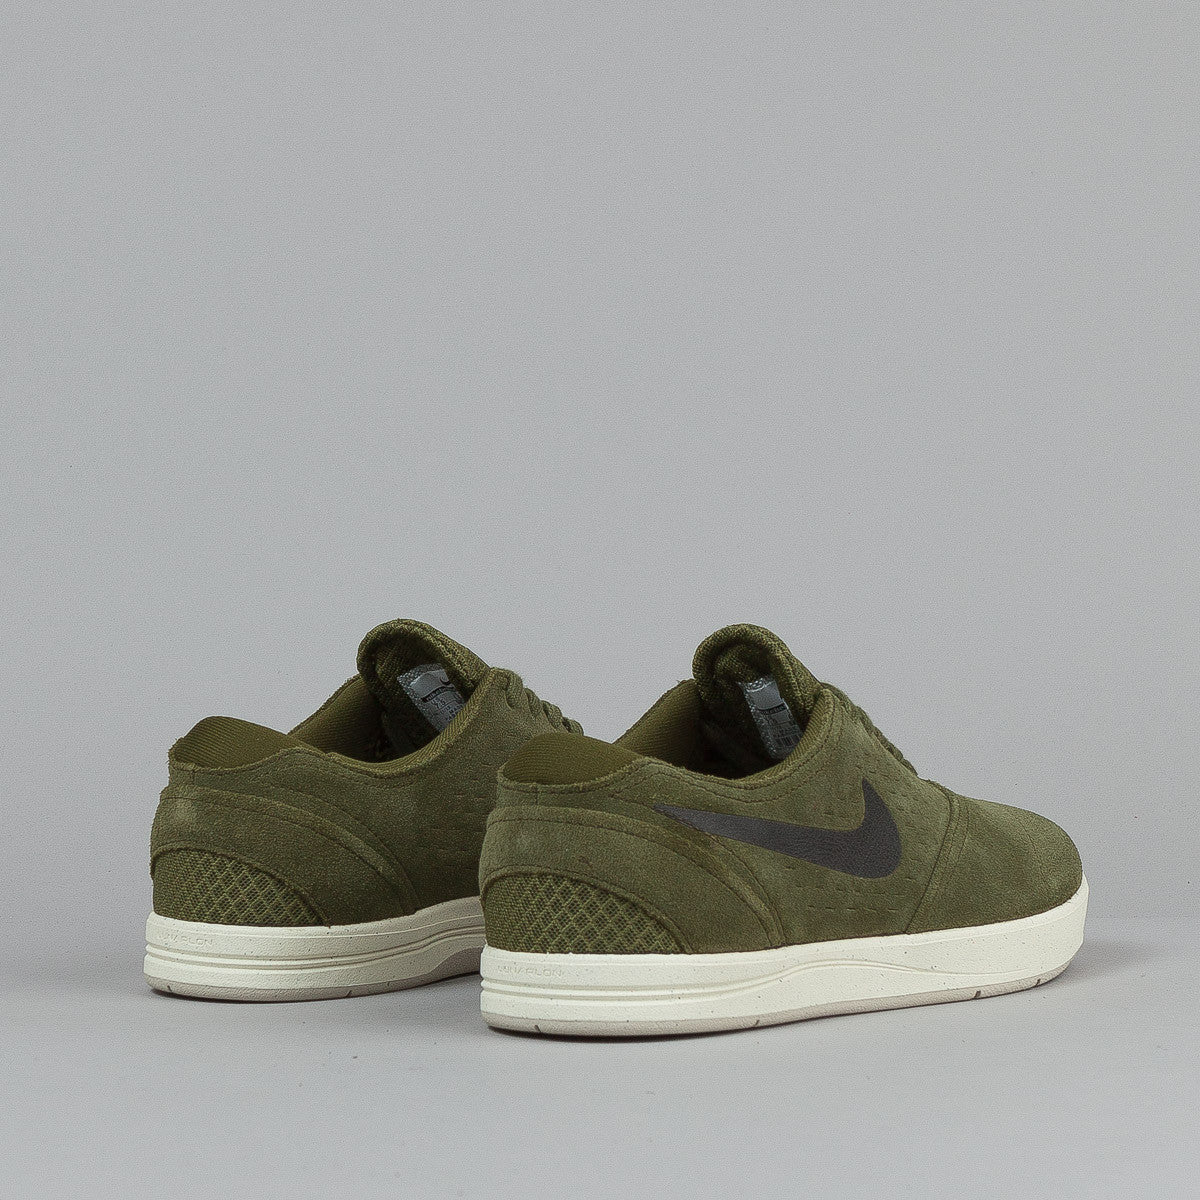 Nike SB Eric Koston 2 Legion Green / Black - Cashmere